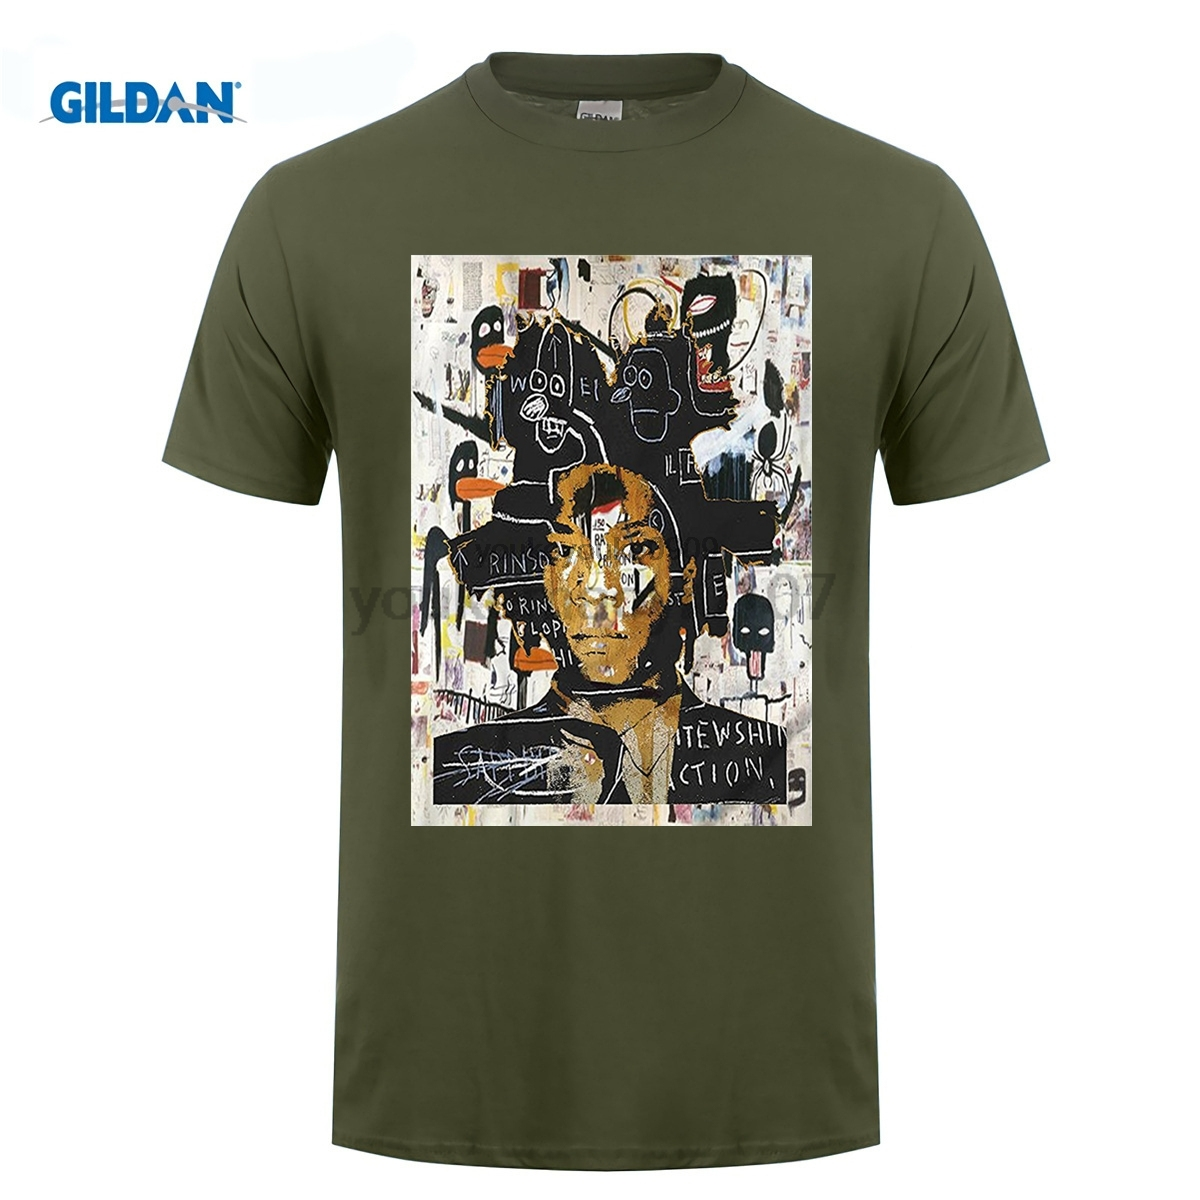 GILDAN New Arrival Gildan Crew Neck Short-Sleeve Tall Jean Michel Basquiat Self Portrait T Shirt